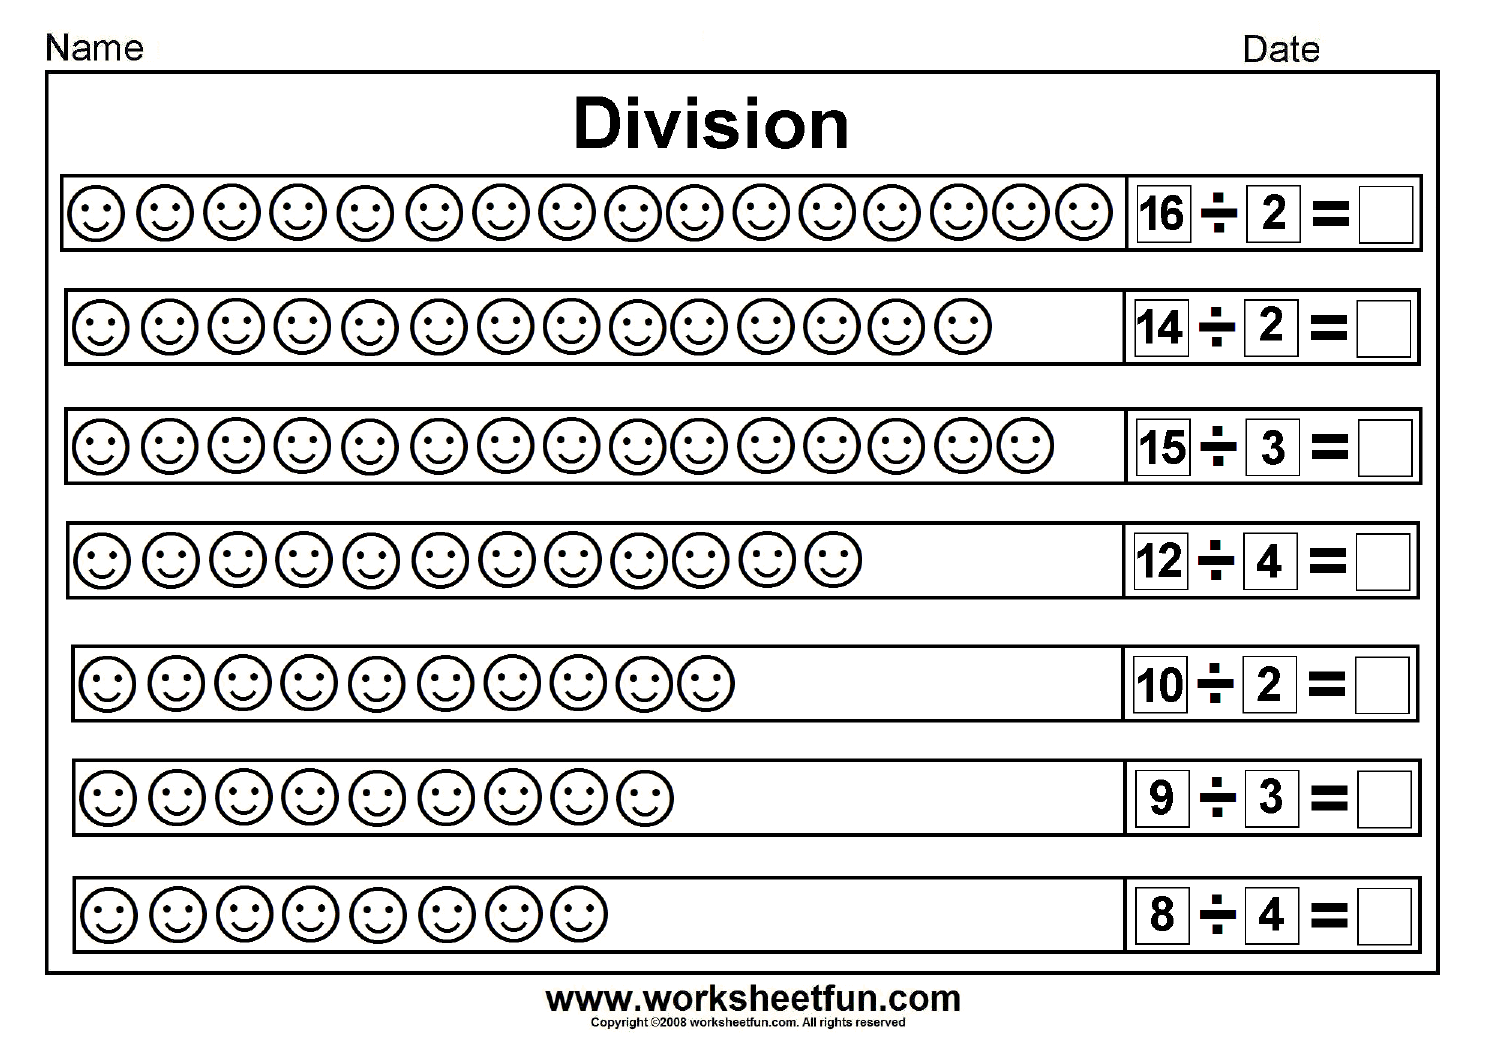 Worksheet 612792 Division Worksheets for 3rd Grade Division – Free Division Worksheets for 3rd Grade